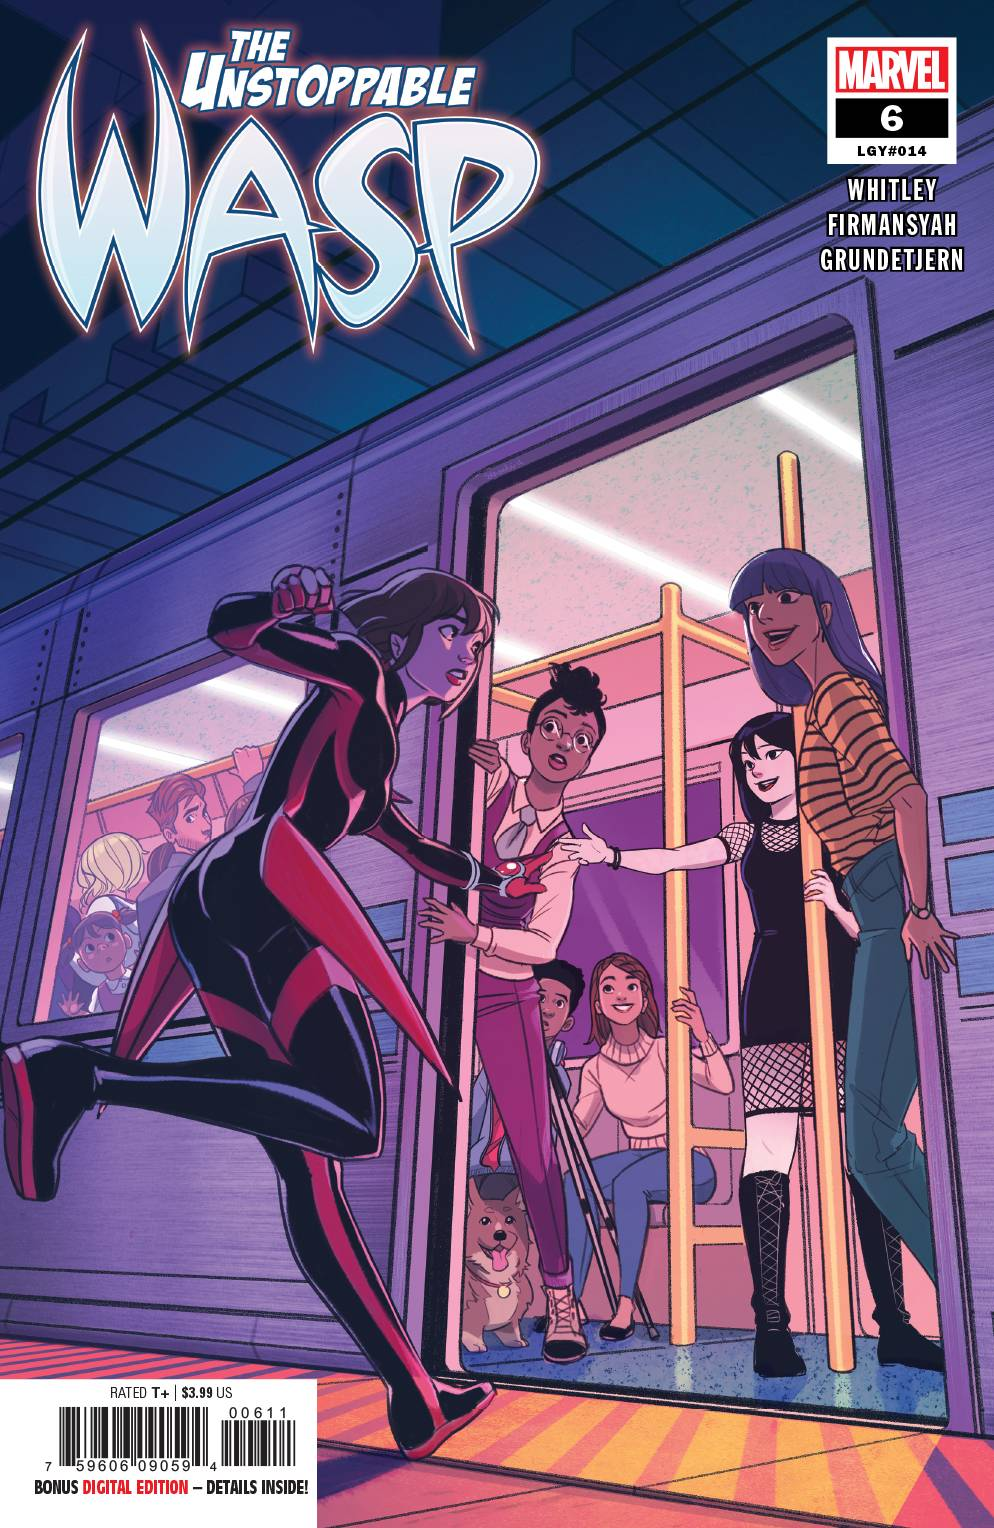 UNSTOPPABLE WASP 6.jpg